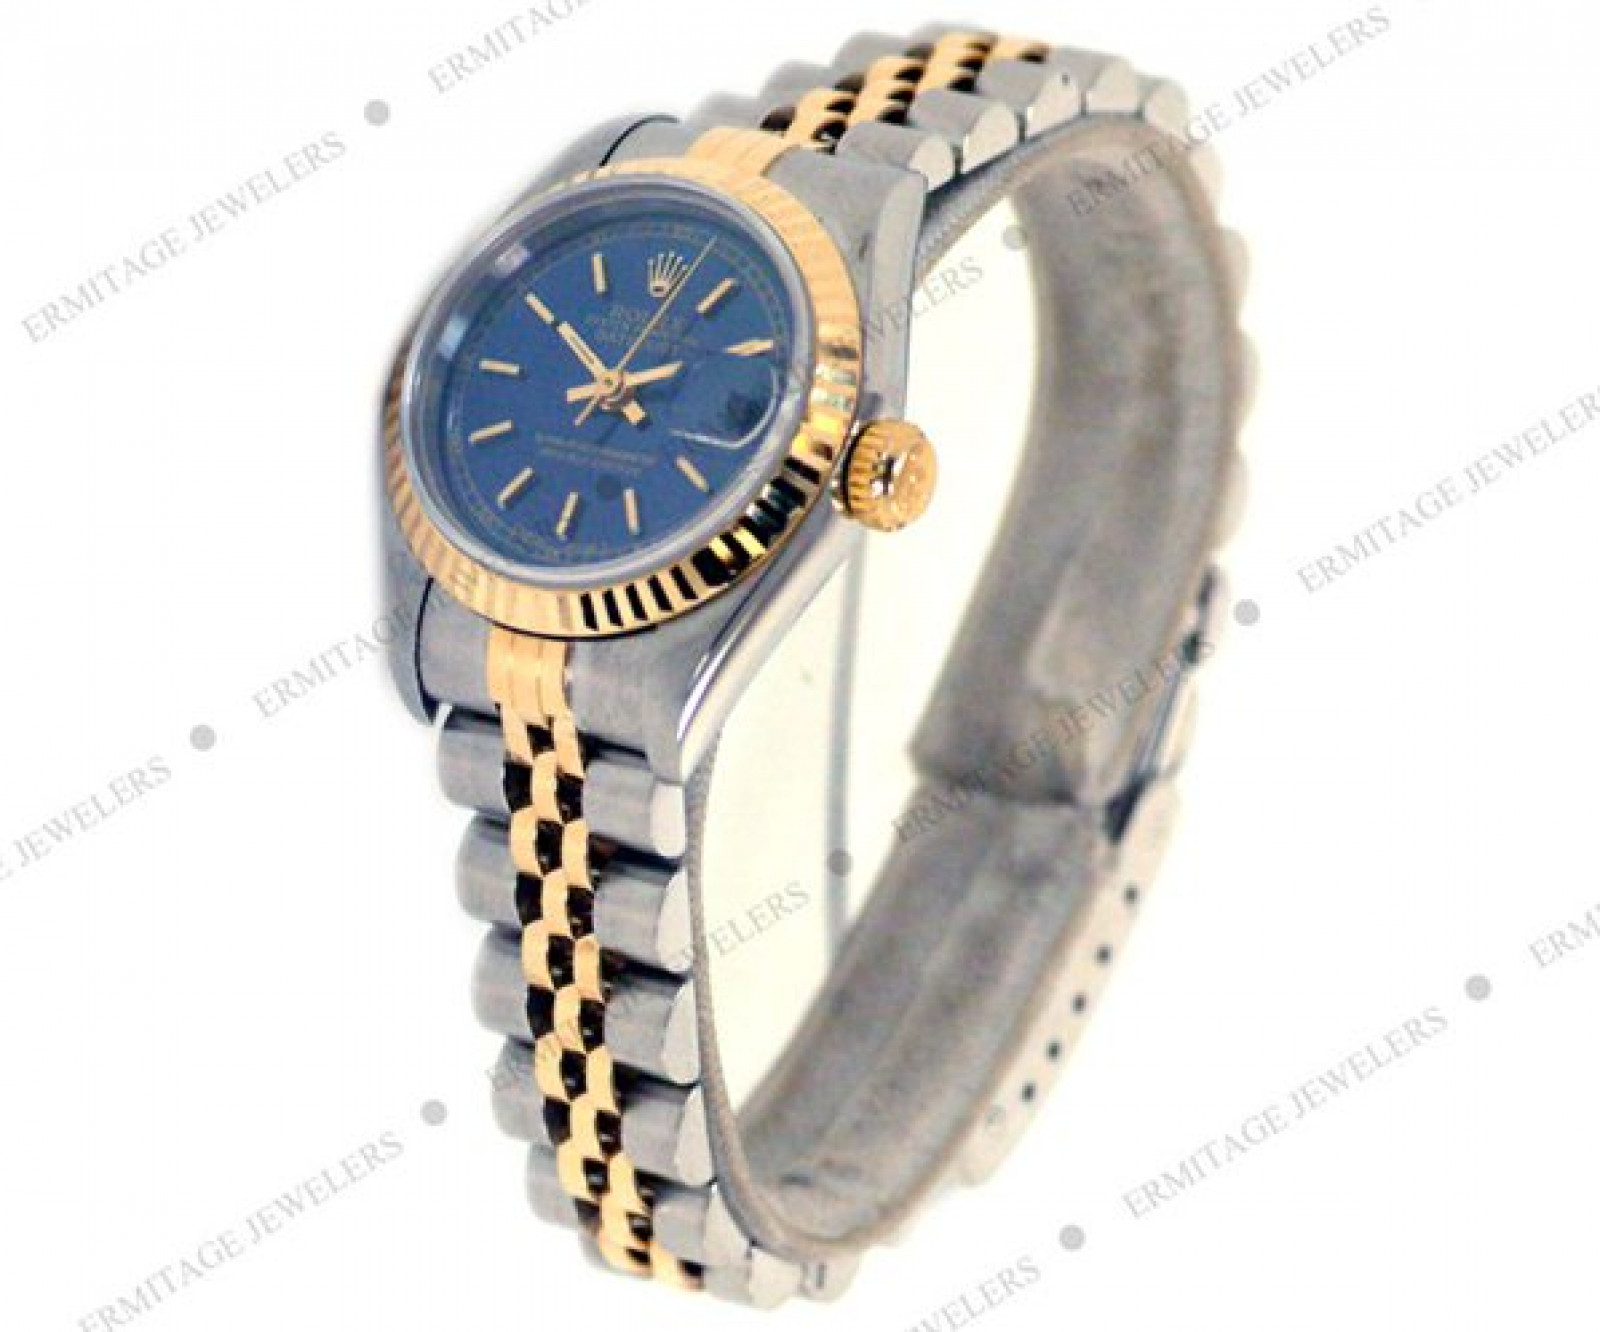 Pre-Owned Rolex Datejust 69173 with Blue Dial